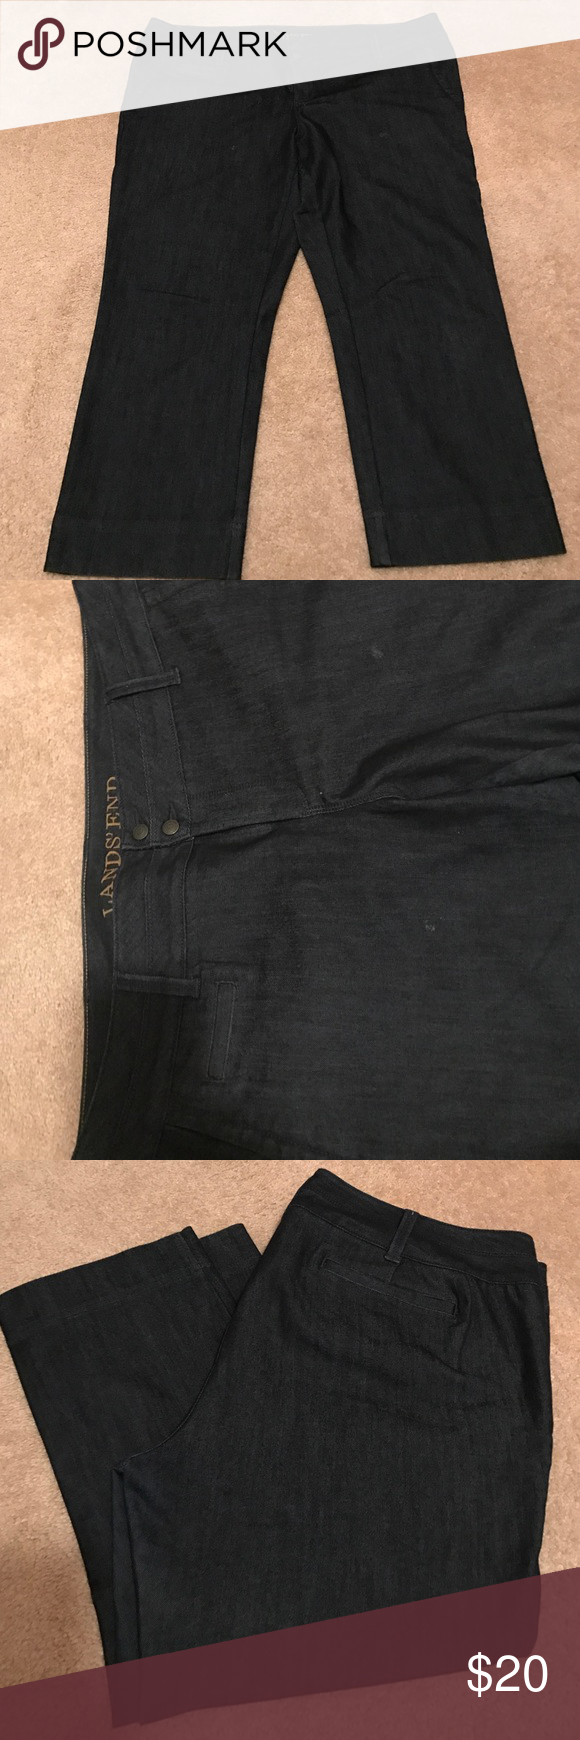 Dressy dark denim capris Lands' End dark denim jean capris. Two button closer with hidden side pockets. Wide leg. Perfect for casual Friday. Pet/smoke free home Lands' End Jeans Ankle & Cropped